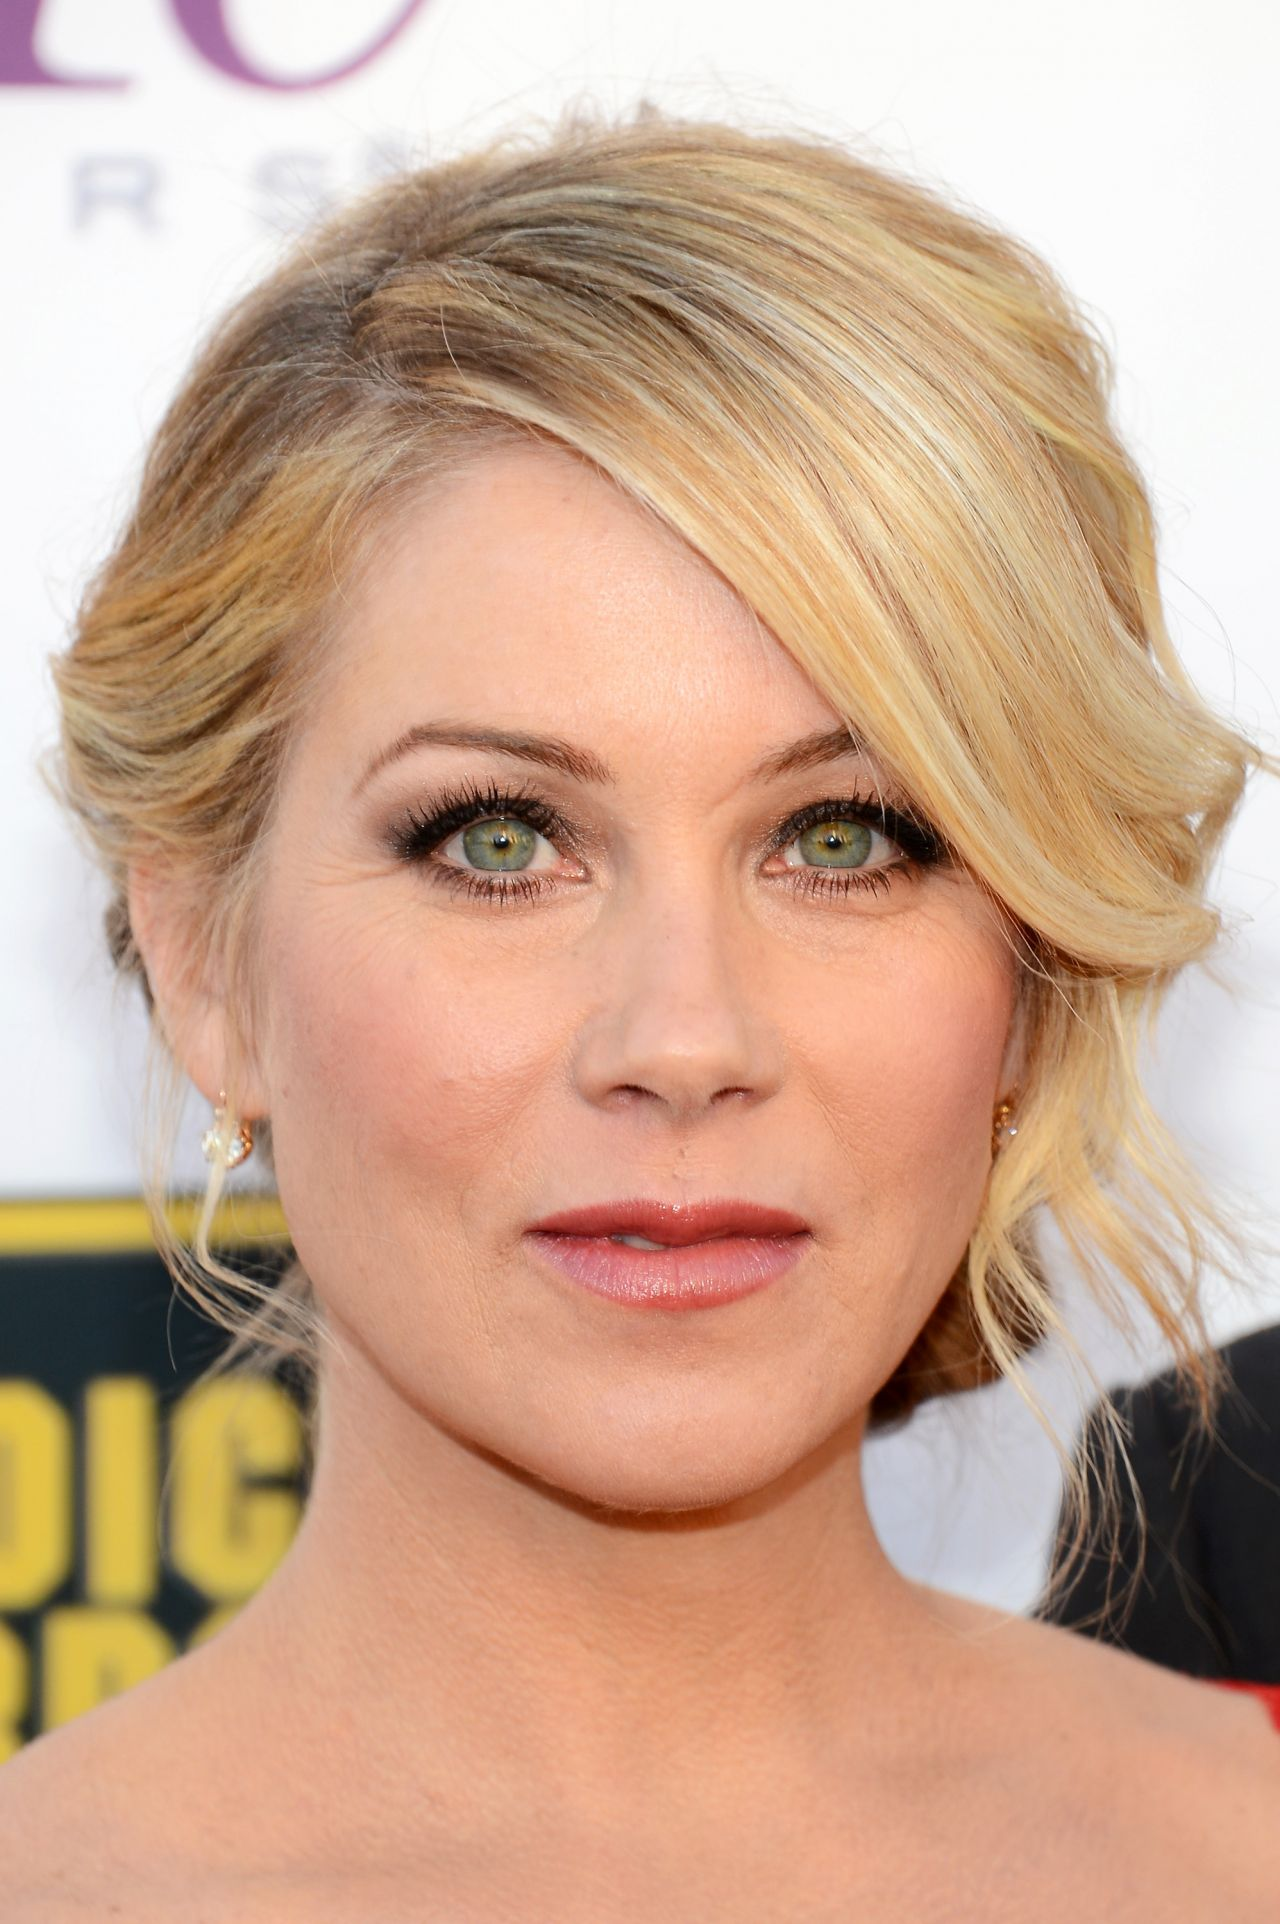 christina-applegate-at-2014-critics-choice-movie-awards-in-santa-monica_2